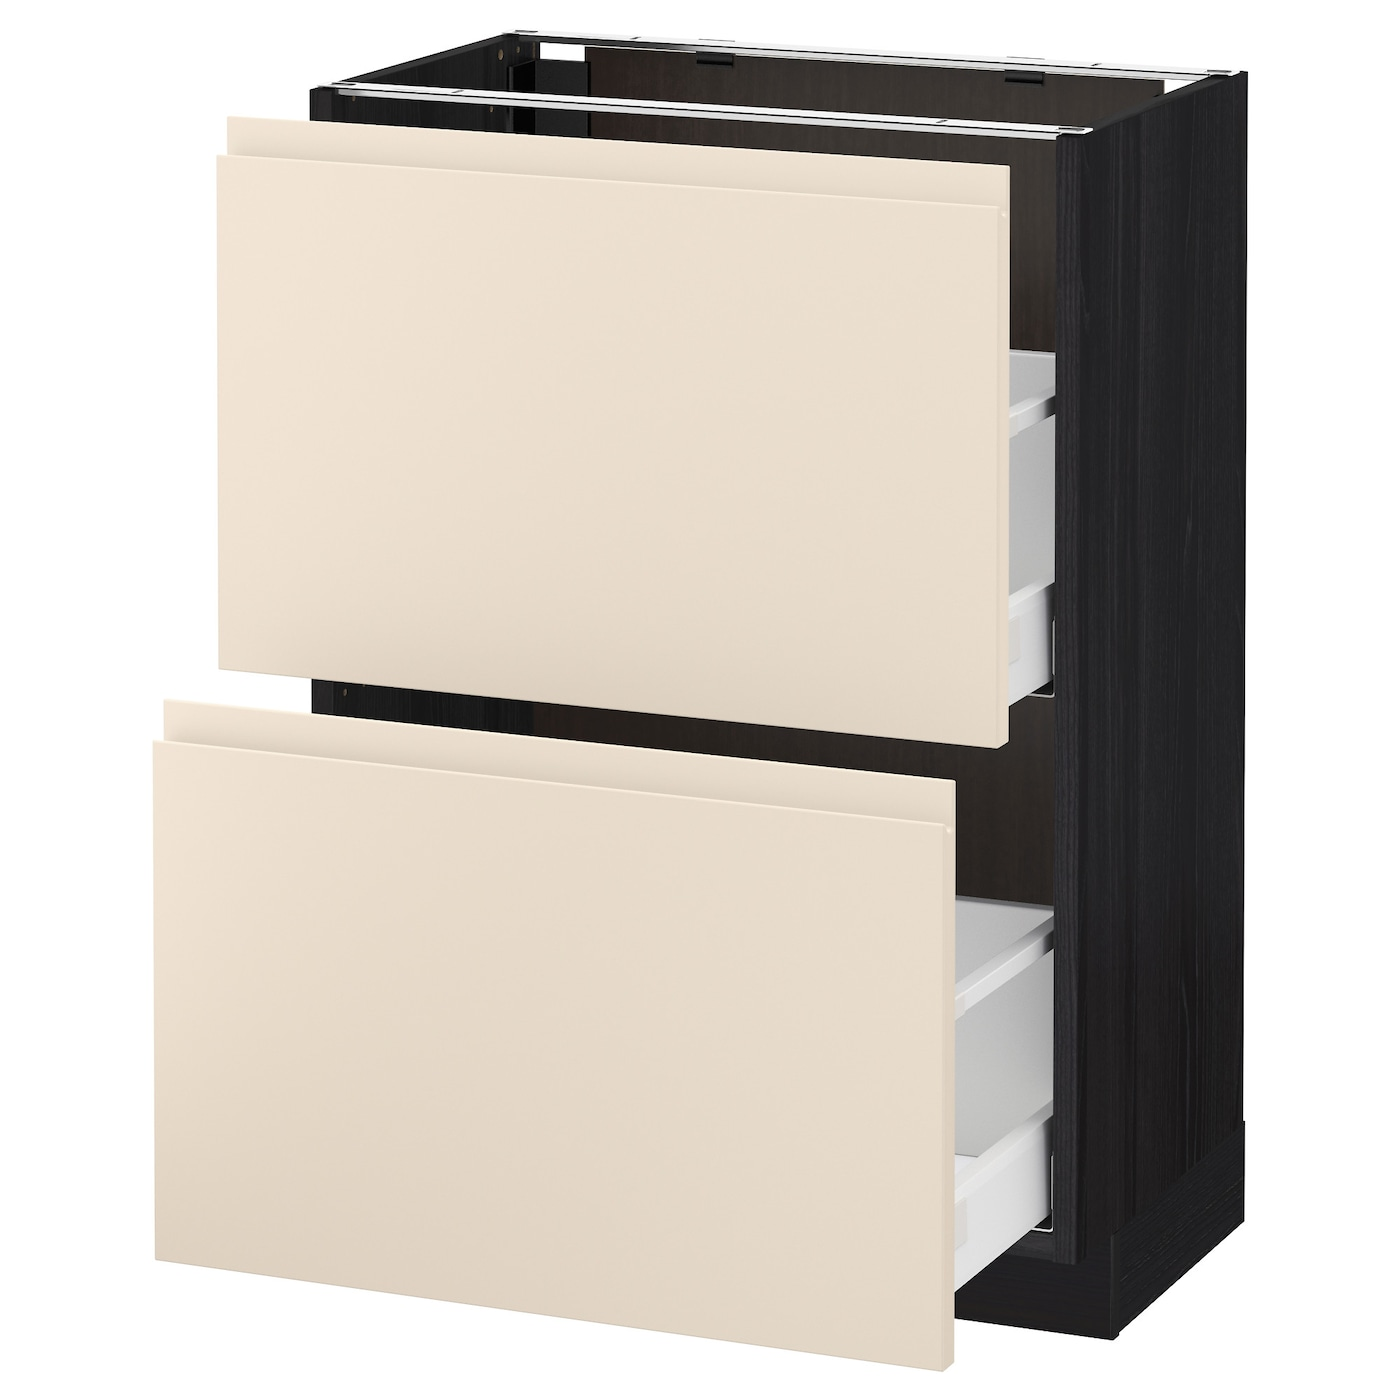 IKEA METOD/MAXIMERA base cabinet with 2 drawers Smooth-running drawers with stop.